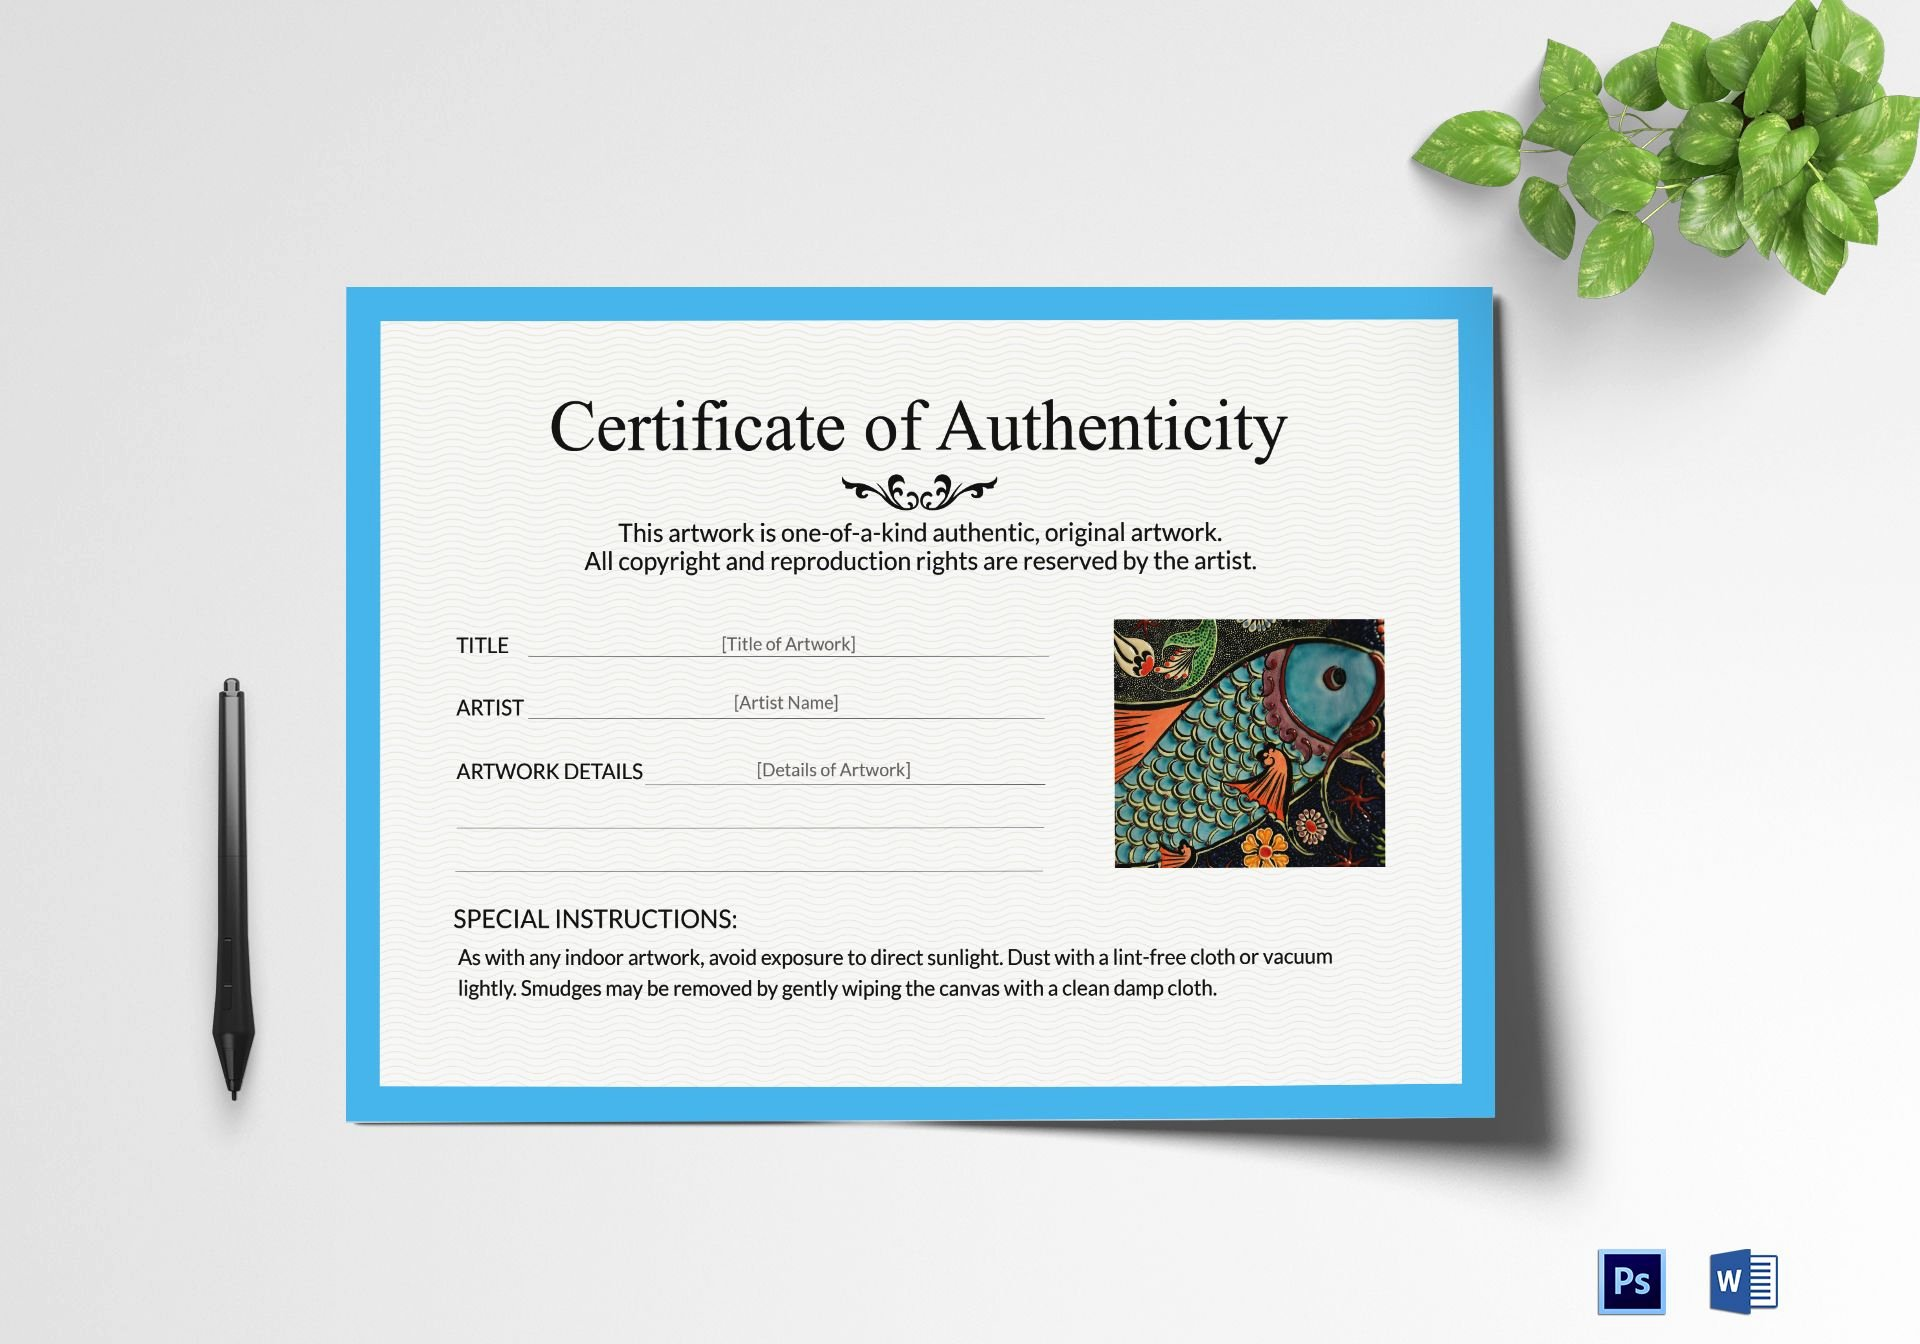 Certificate Of Authenticity Artwork Template Elegant Artwork Authenticity Certificate Design Template In Psd Word